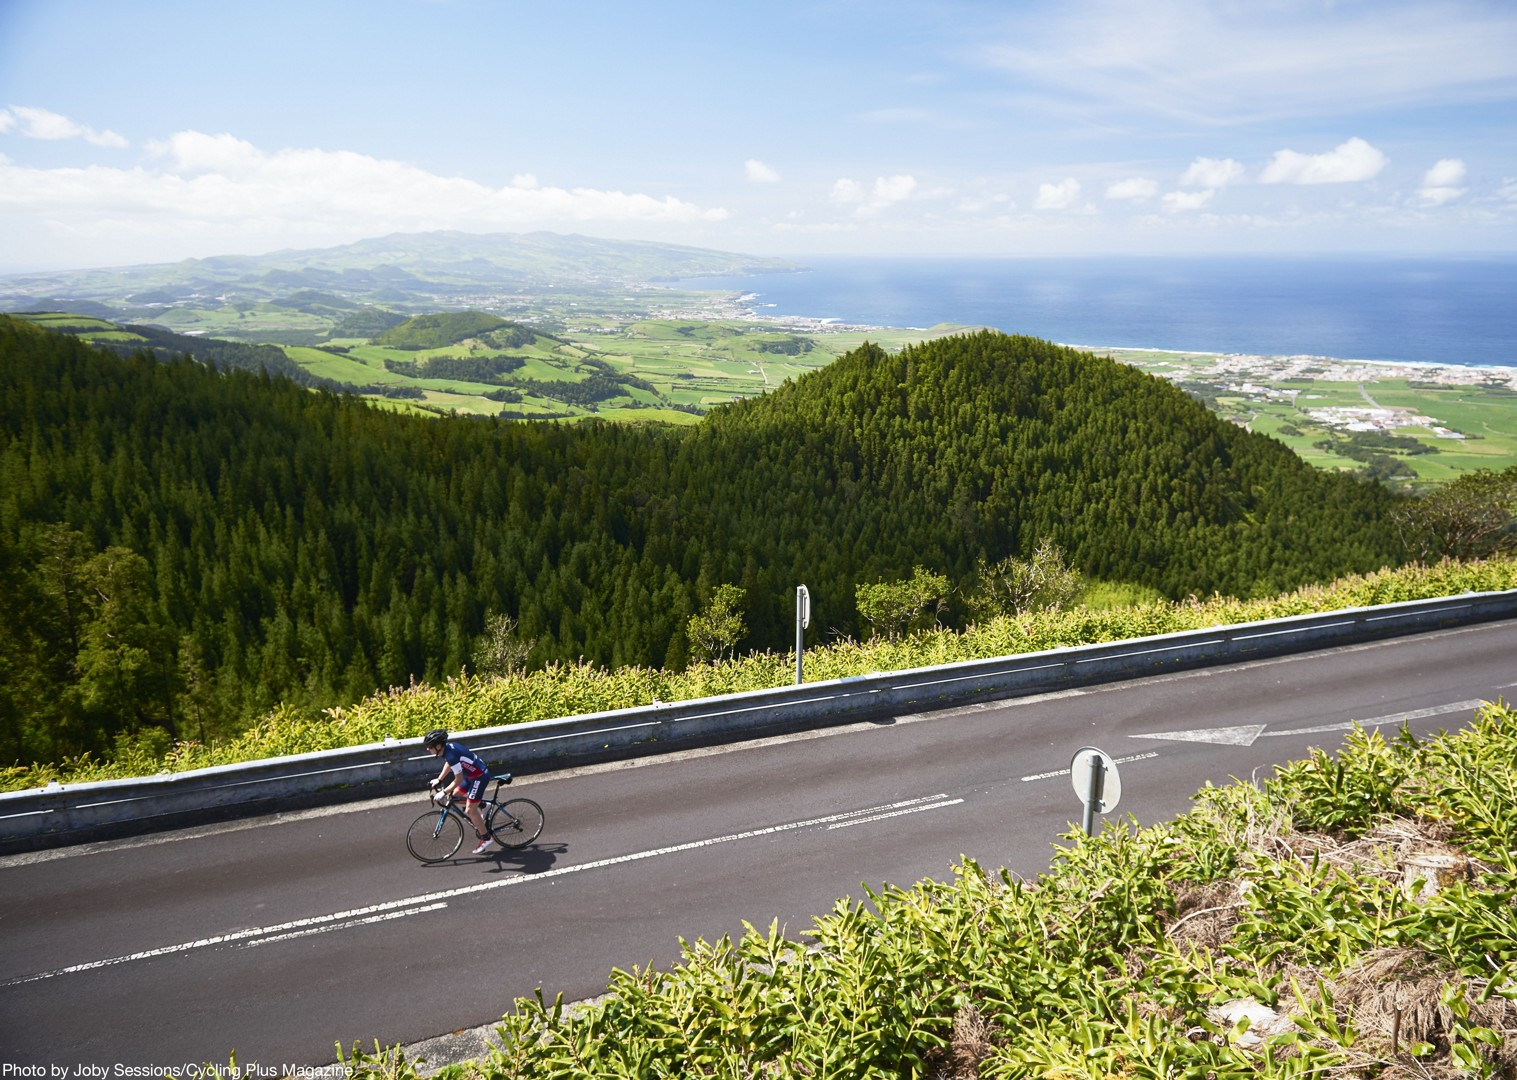 furnas-guided-road-cycling-holiday-portugal-the-azores-sao-miguel.JPG - The Azores - Lost World of Sao Miguel - Guided Road Cycling Holiday - Road Cycling